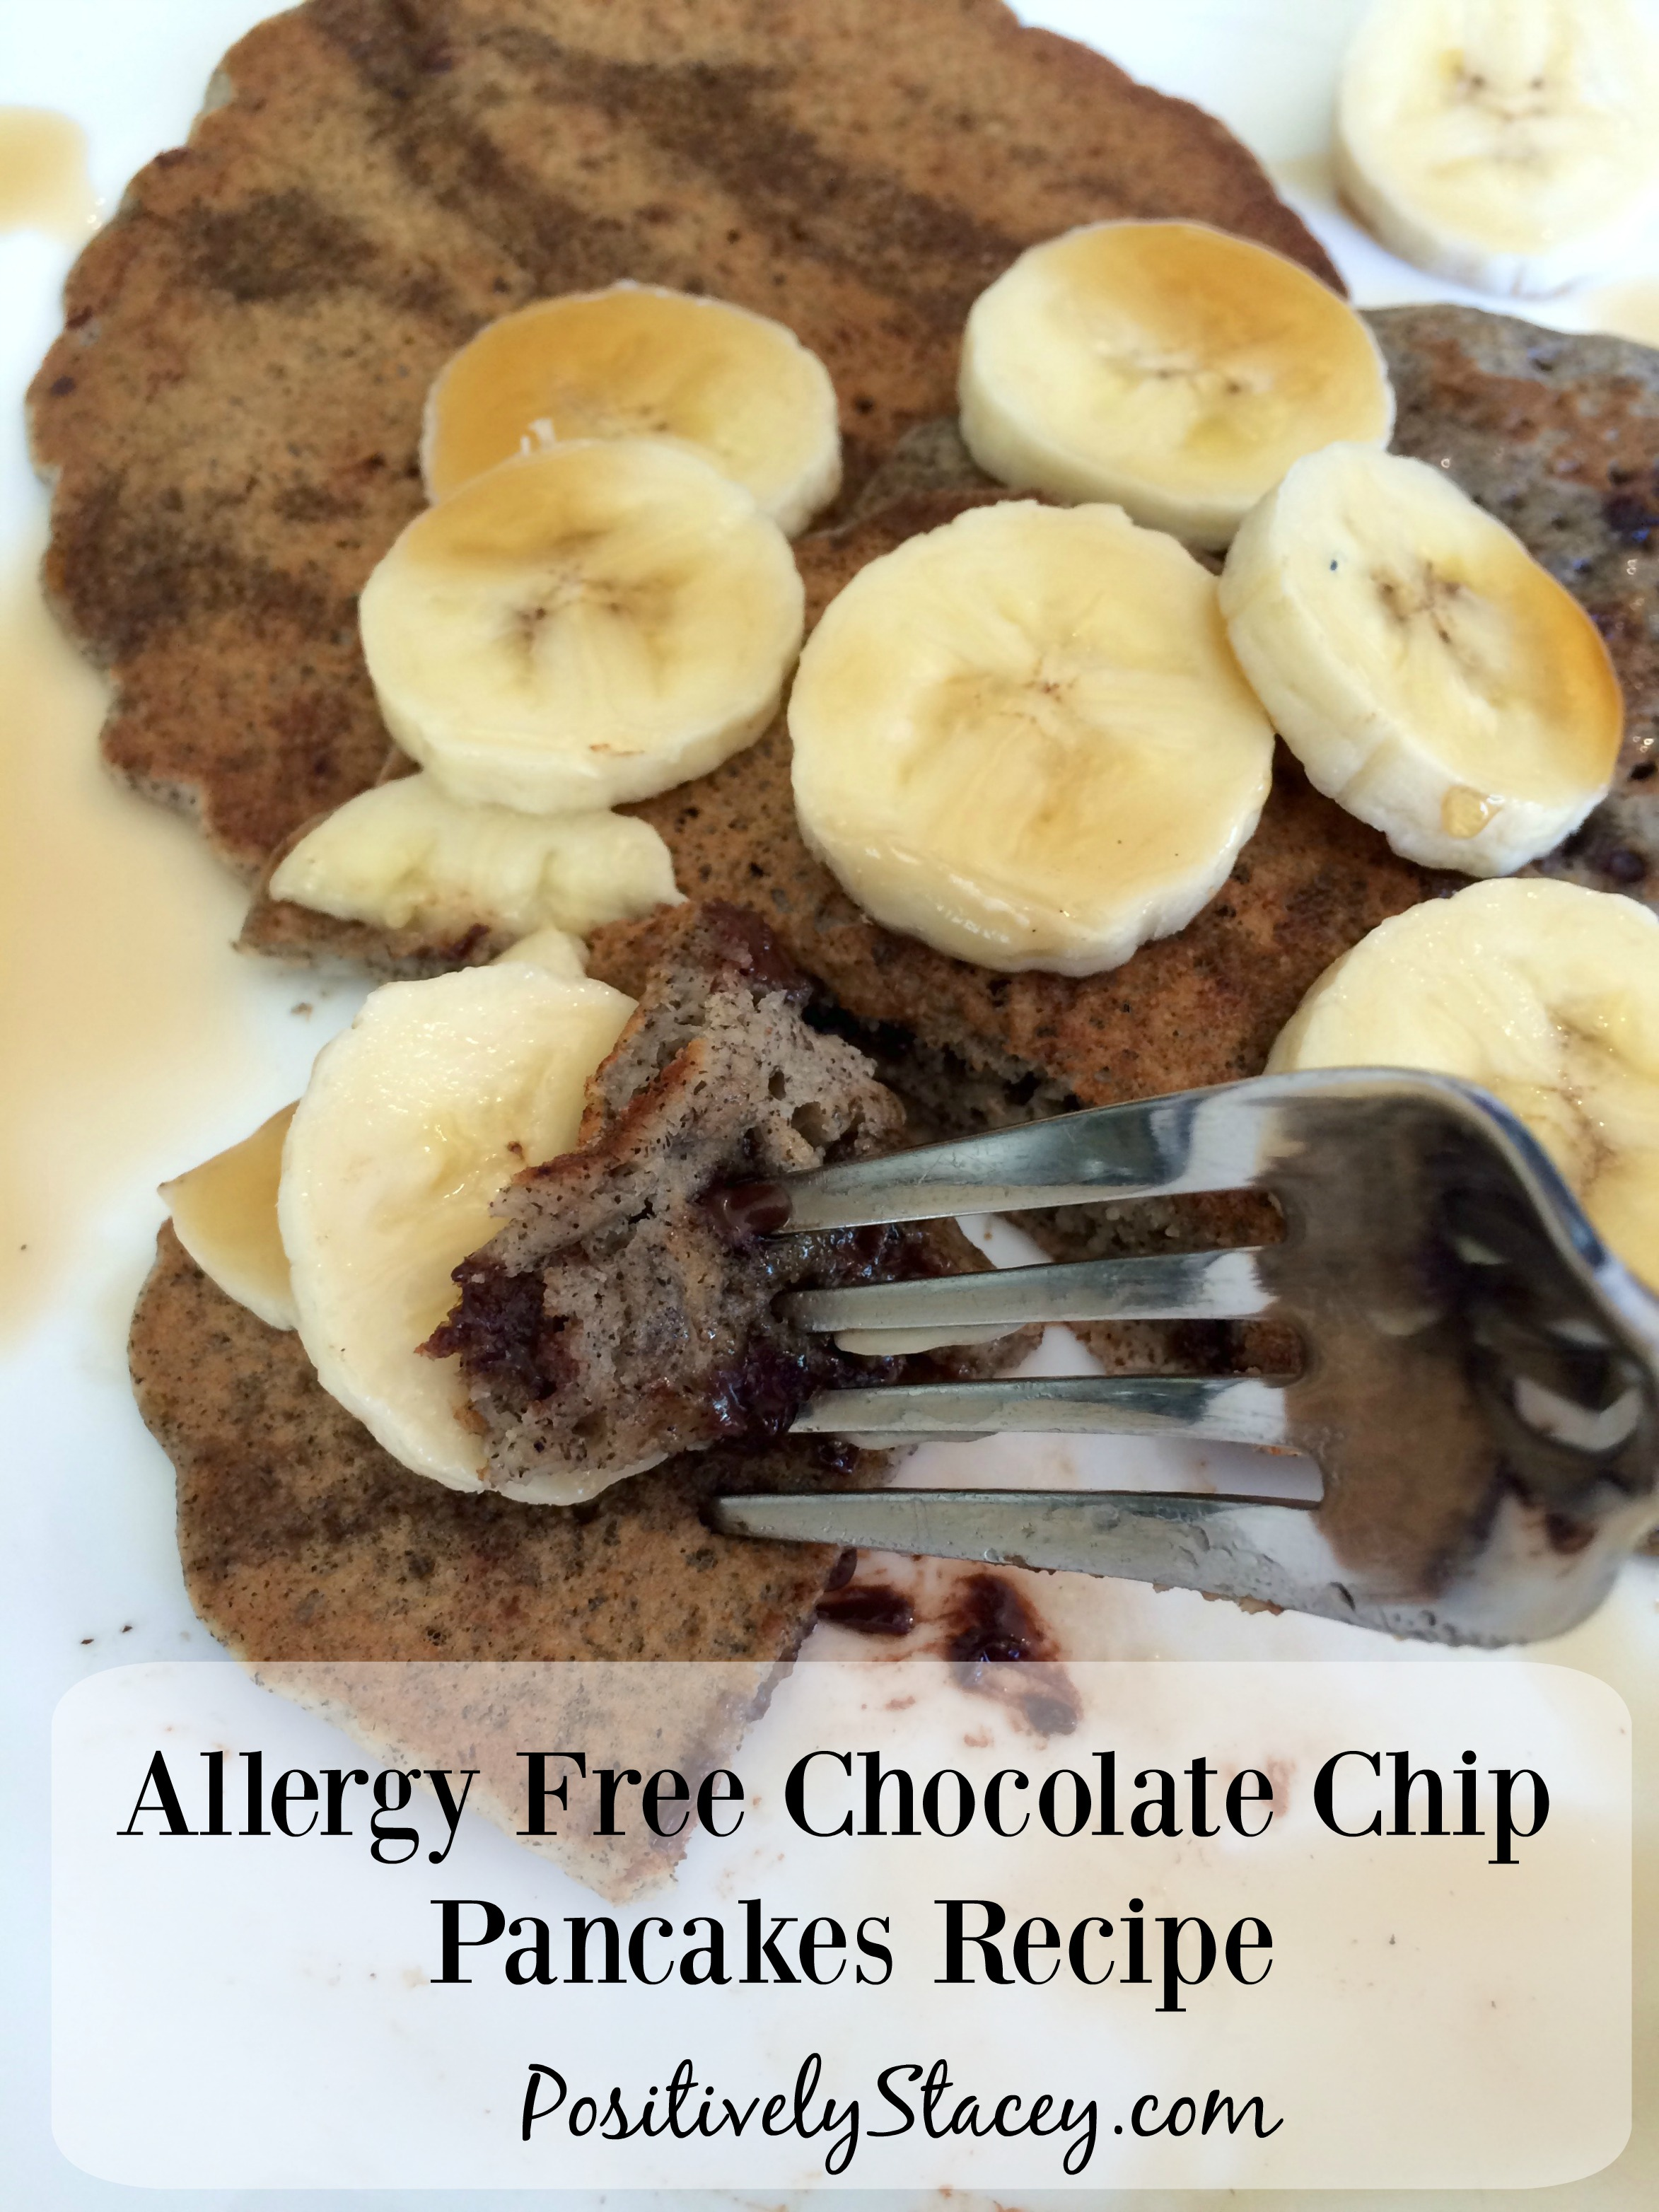 Allergy Free Chocolate Chip Pancakes Recipe - Sooo delicious!!!! And free of the top nine allergens!